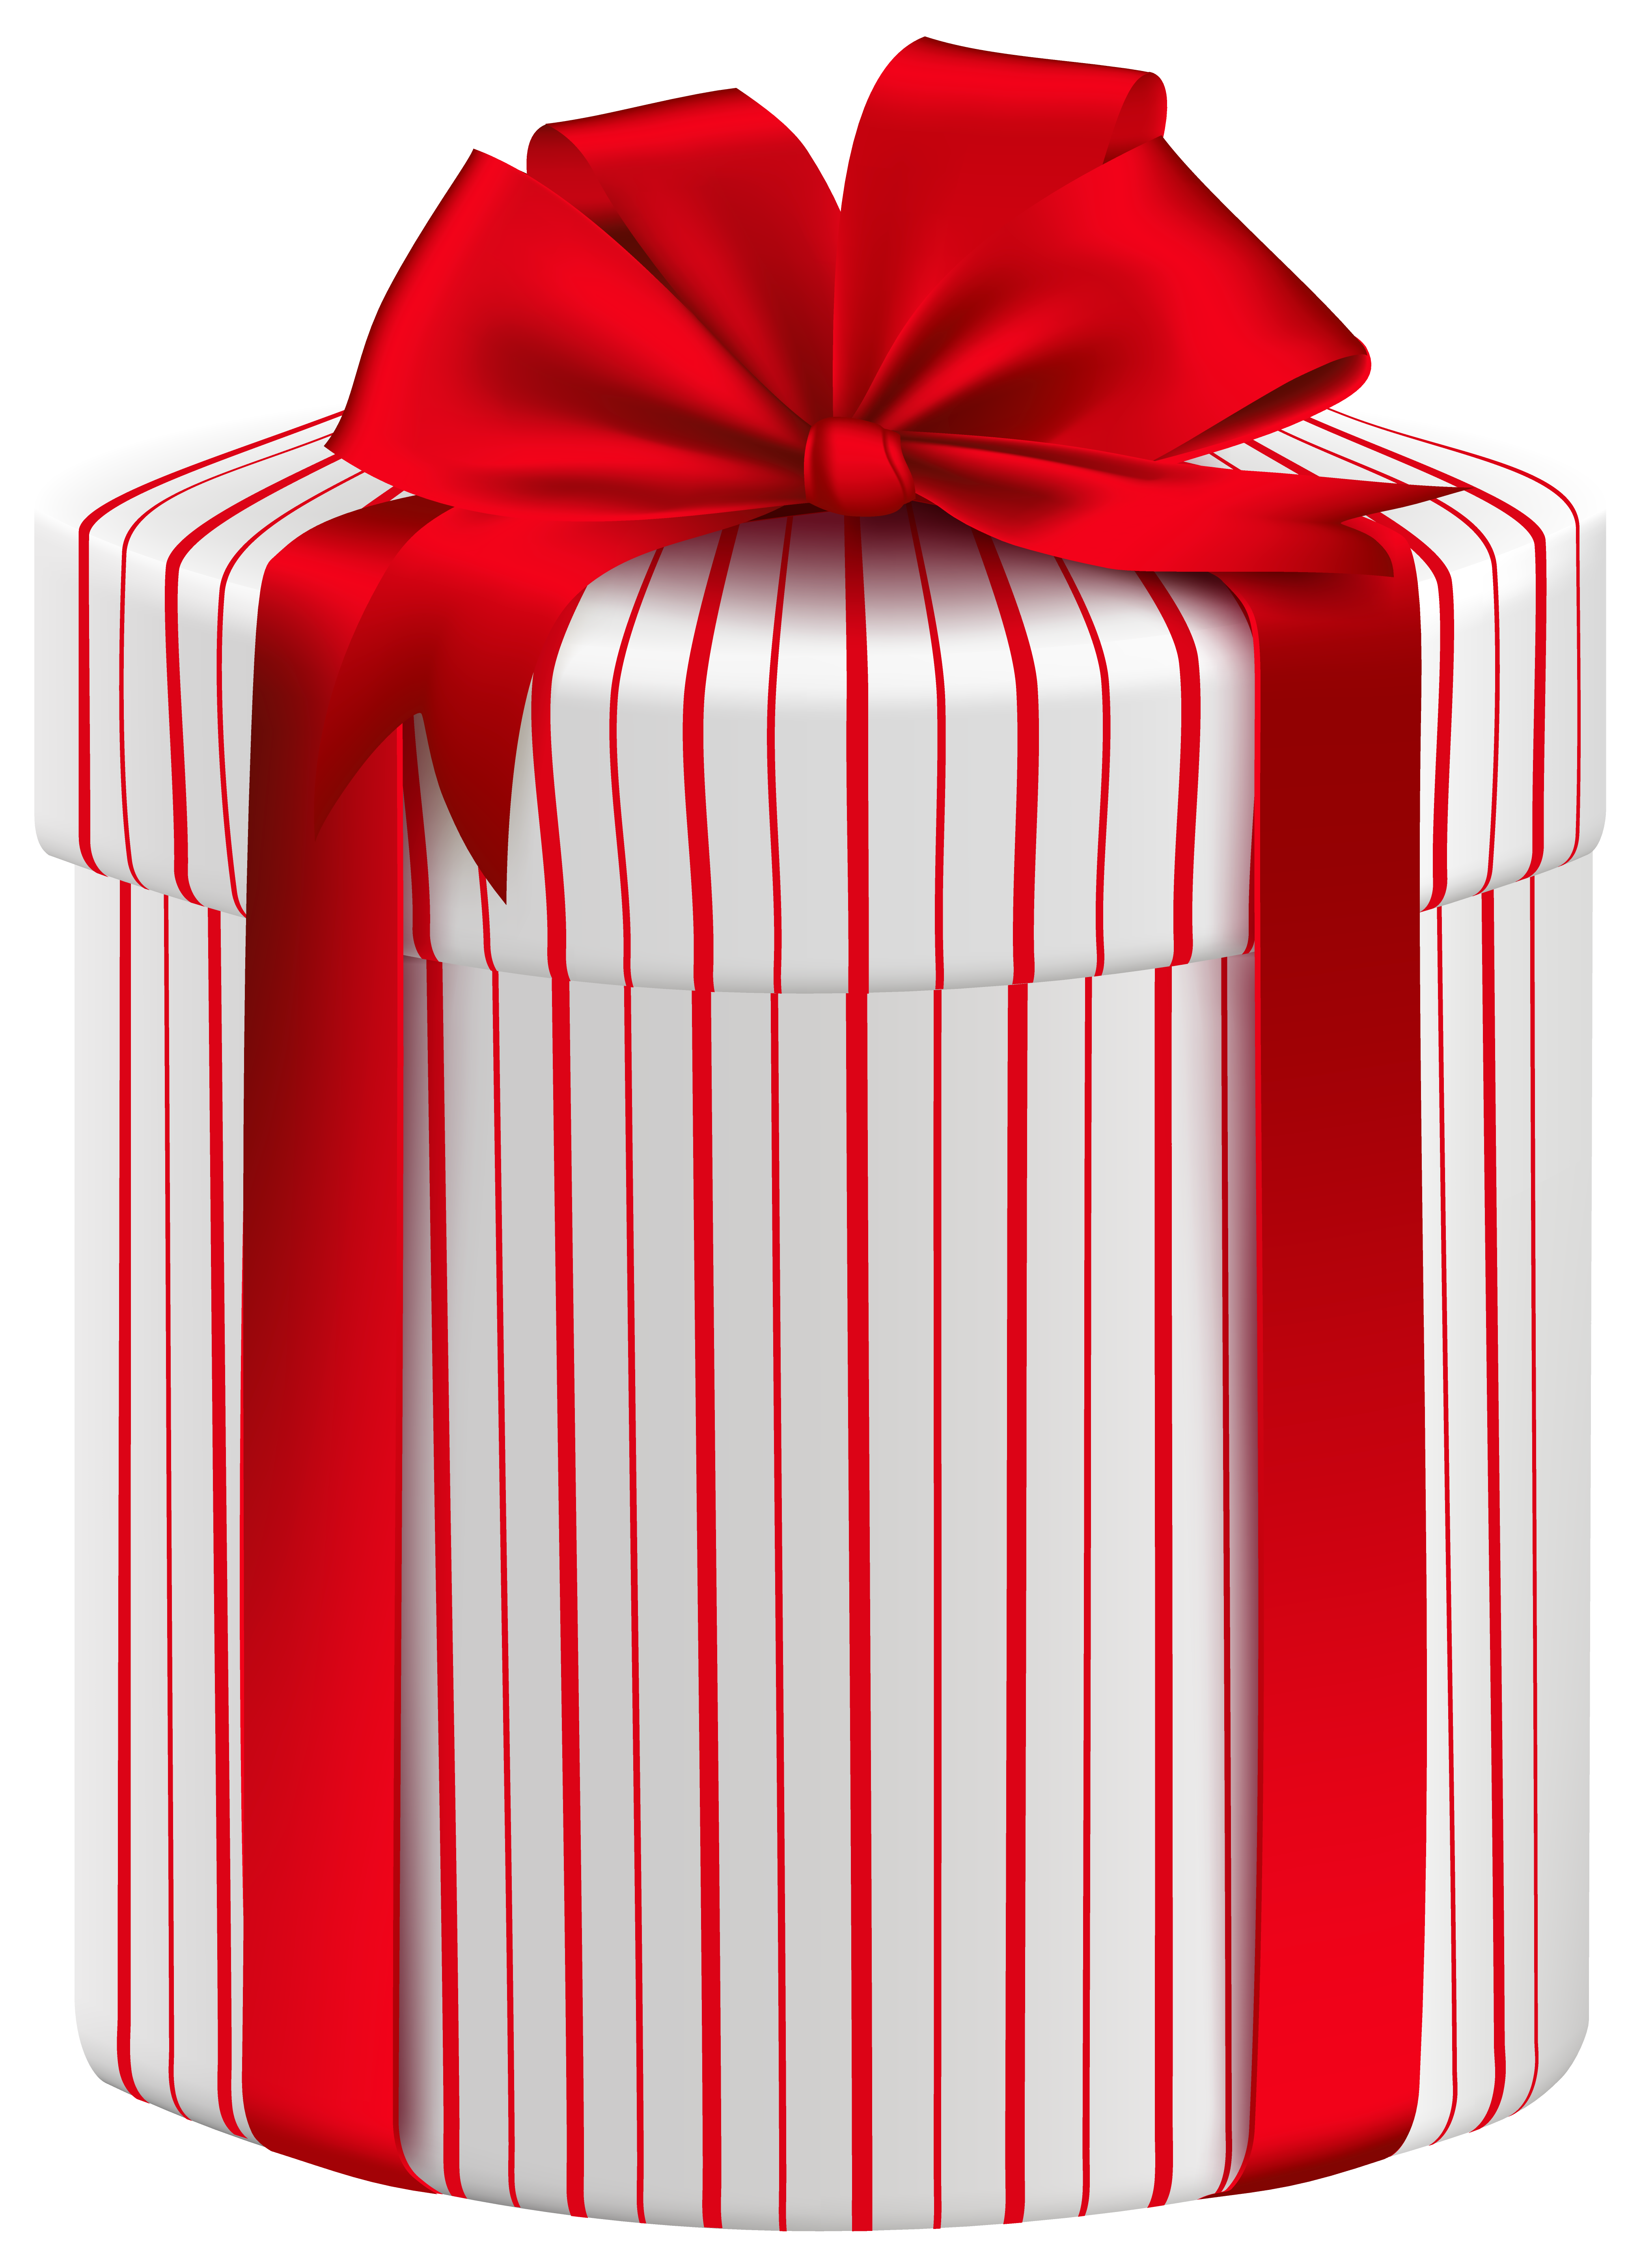 Clipart present large. Gift box with red